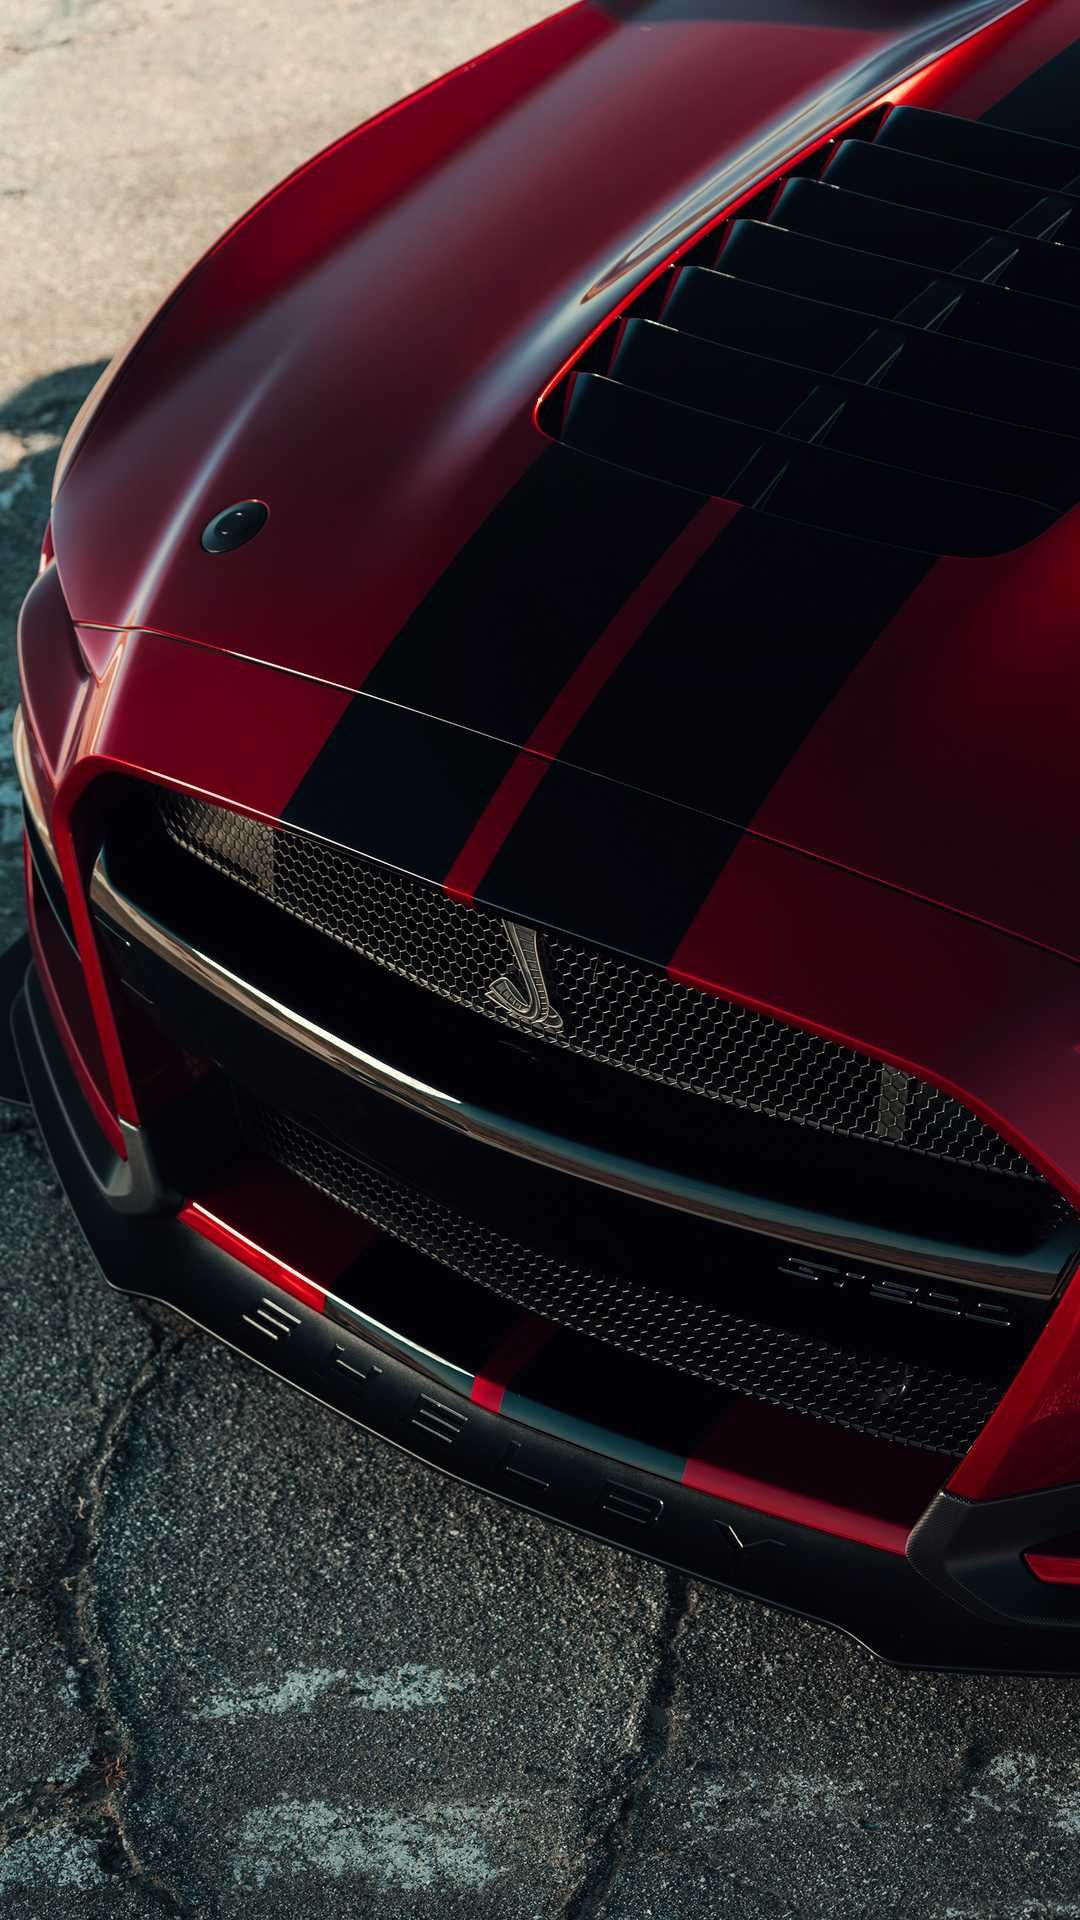 New, 2020 Ford Mustang Shelby GT500, front end Мощные